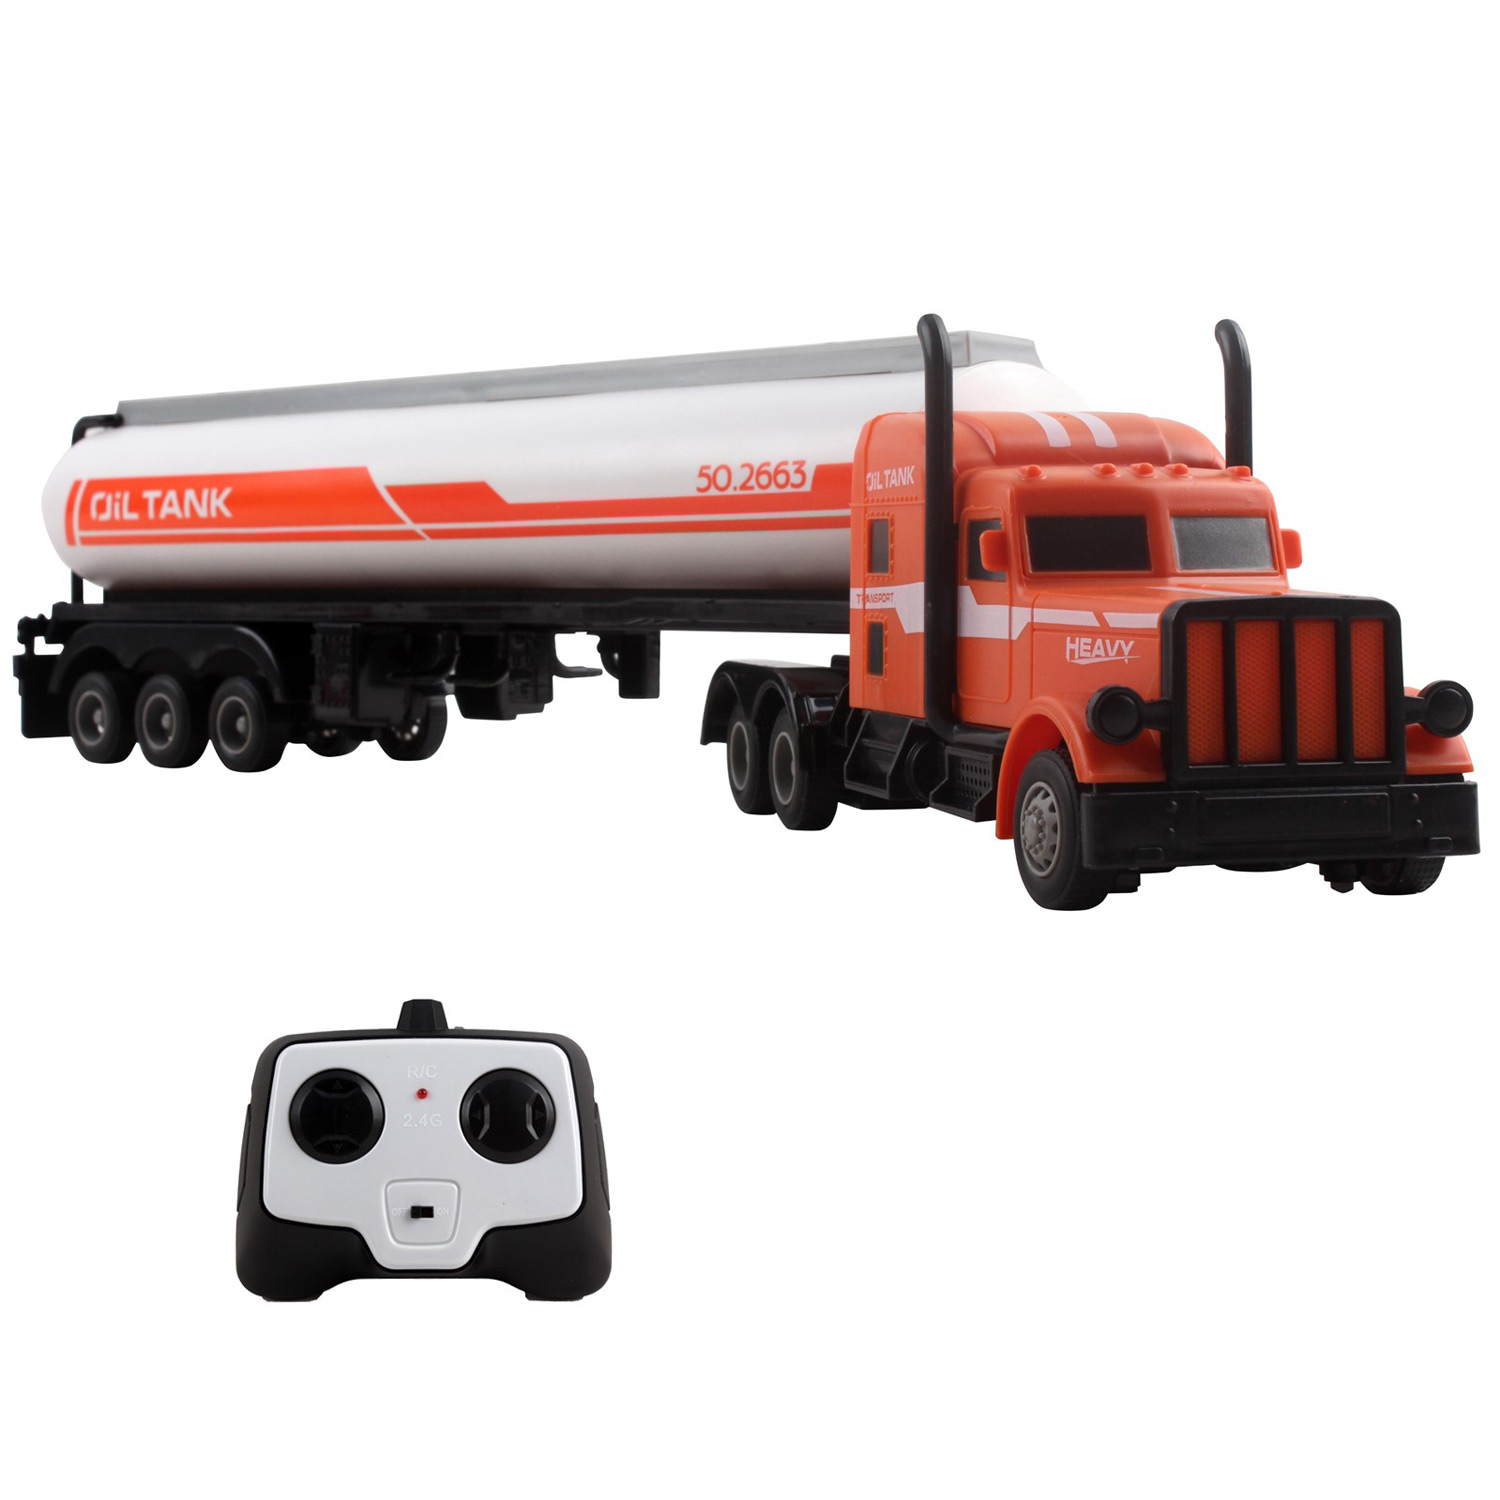 "Large RC Semi Truck Fuel Trailer 18.7"" 2.4Ghz Fast Speed 1:16 Scale Electric Oil Hauler Rechargeable Remote Control Kids Big Rig Toy Carrier Transporter Cargo Vehicle Perfect Gift For Children"